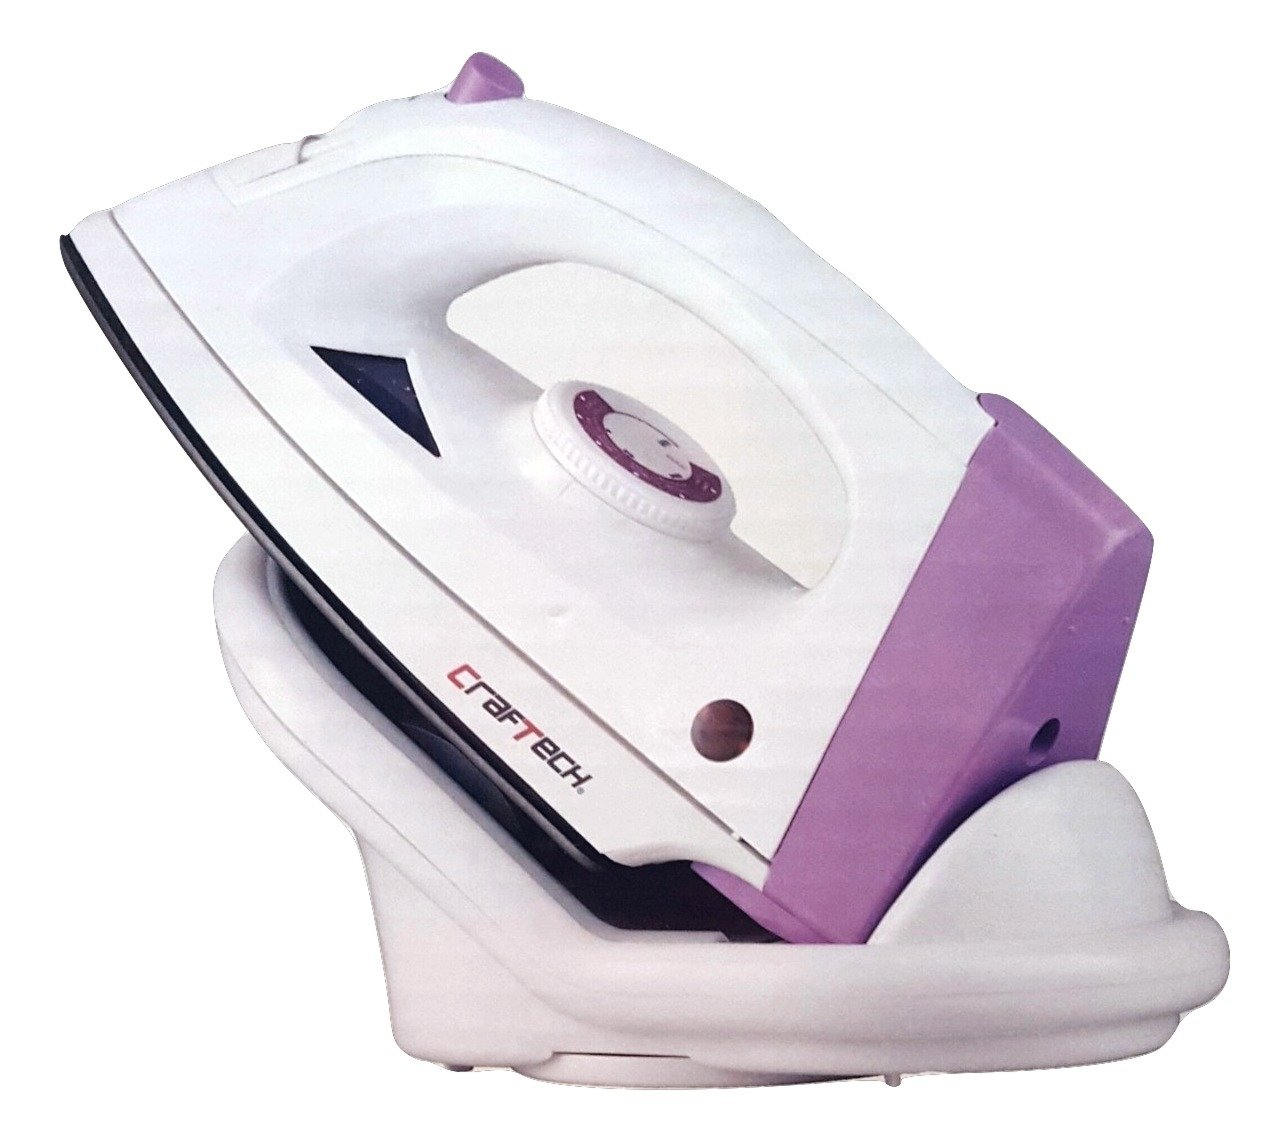 Craftech Cordless Steam Iron SJ4001